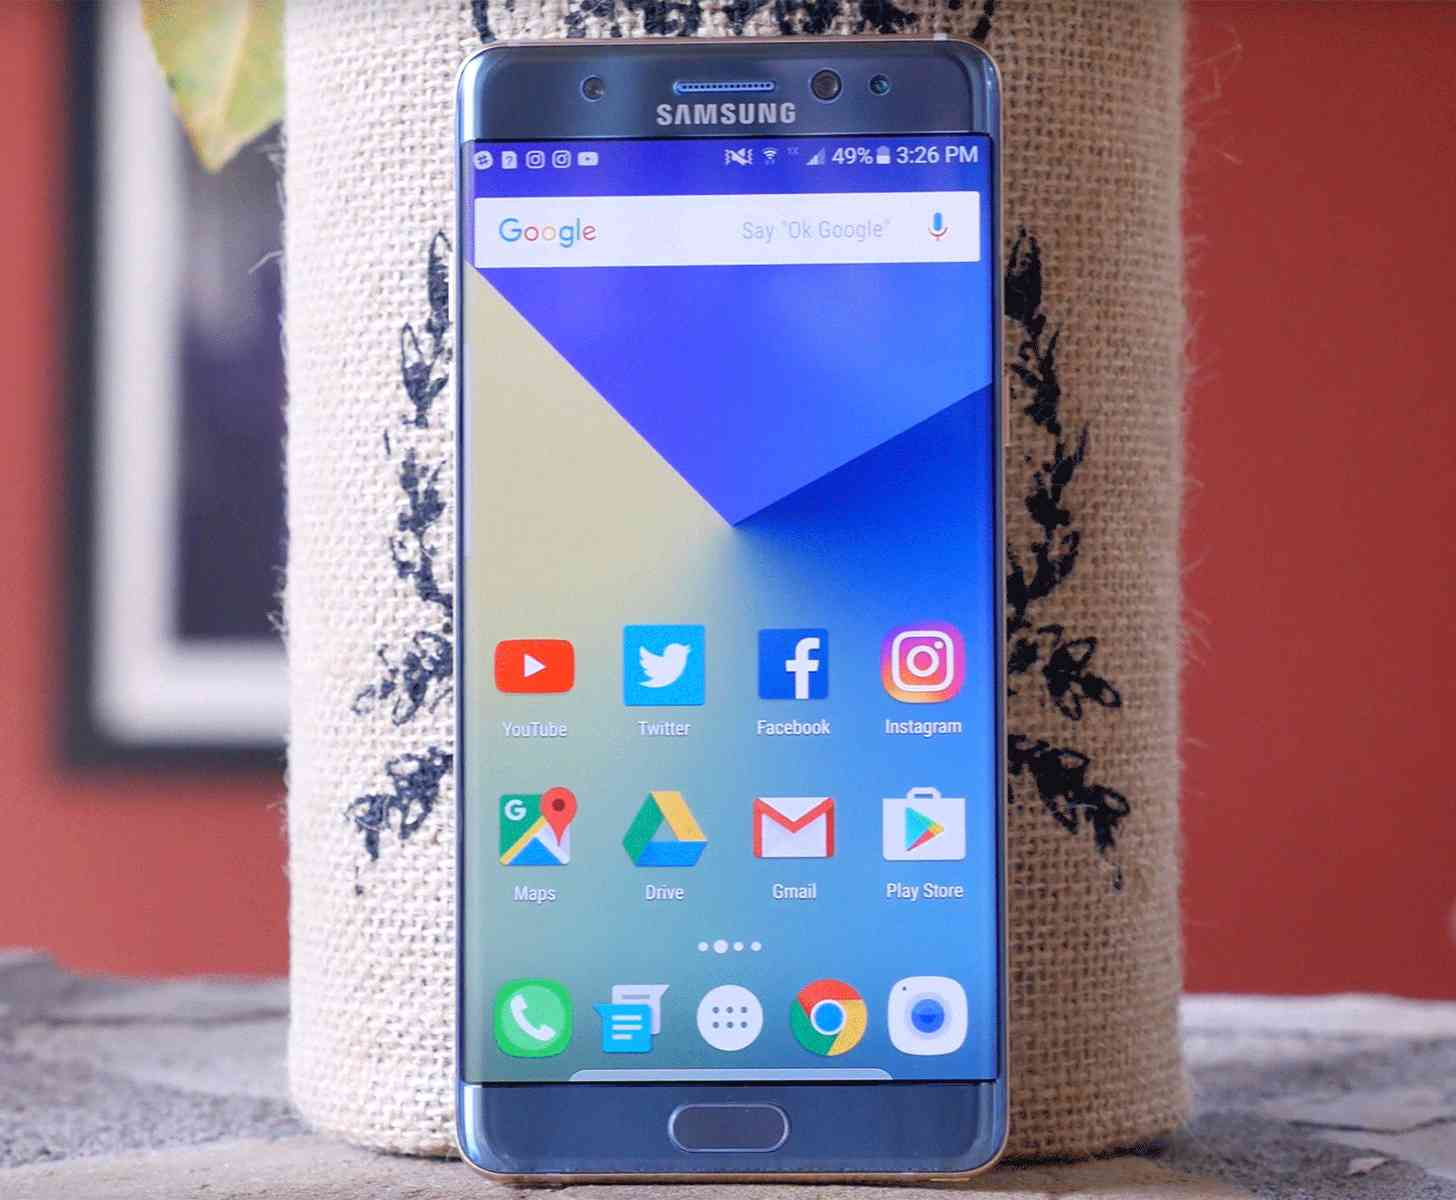 Samsung Galaxy Note 7 Blue Coral hands-on video